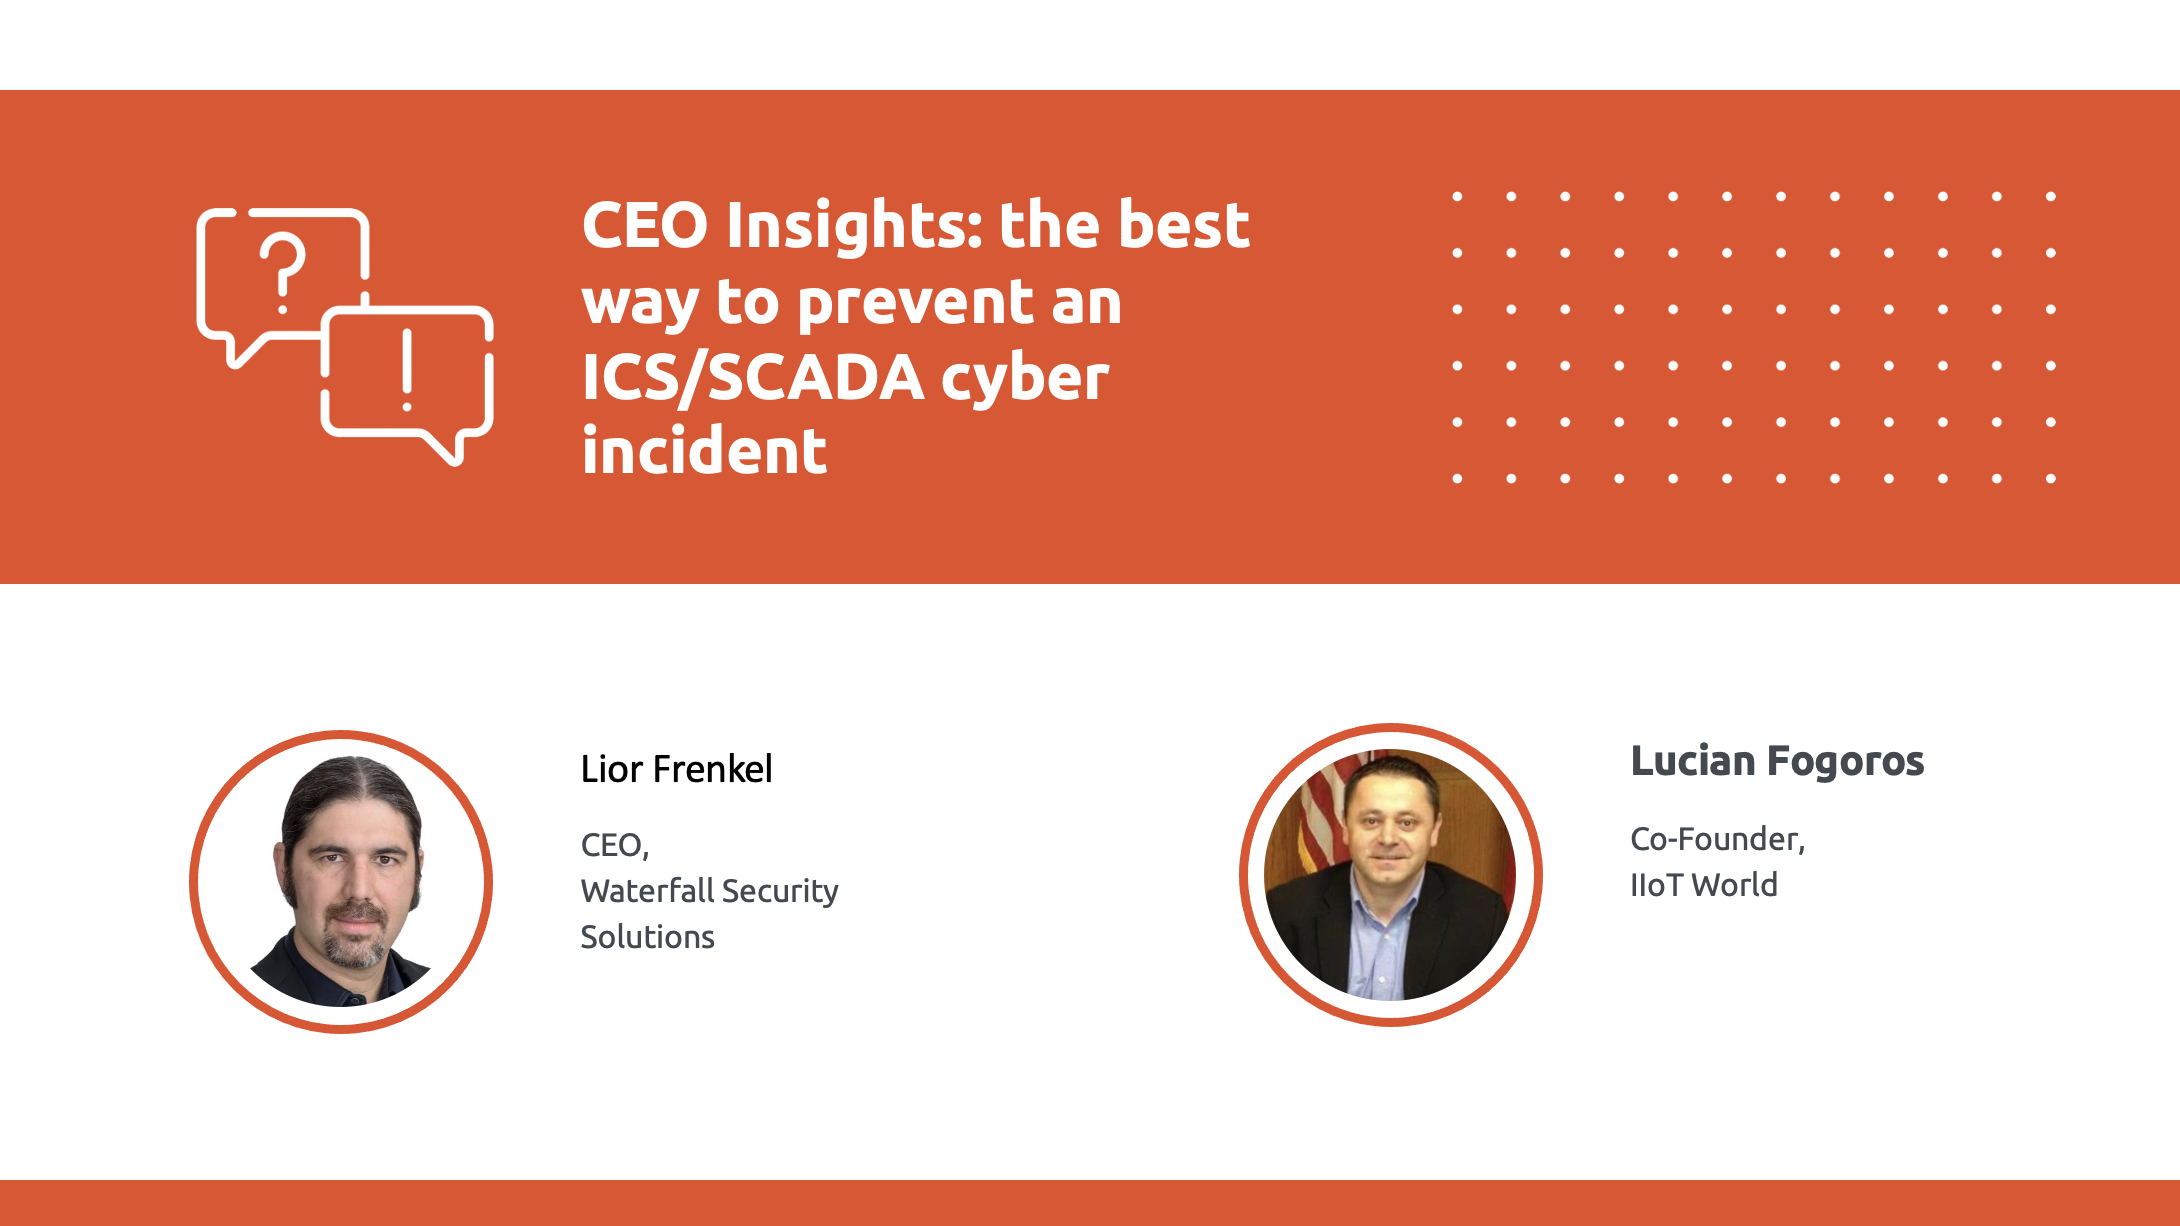 CEO insights with CEO of waterfall security